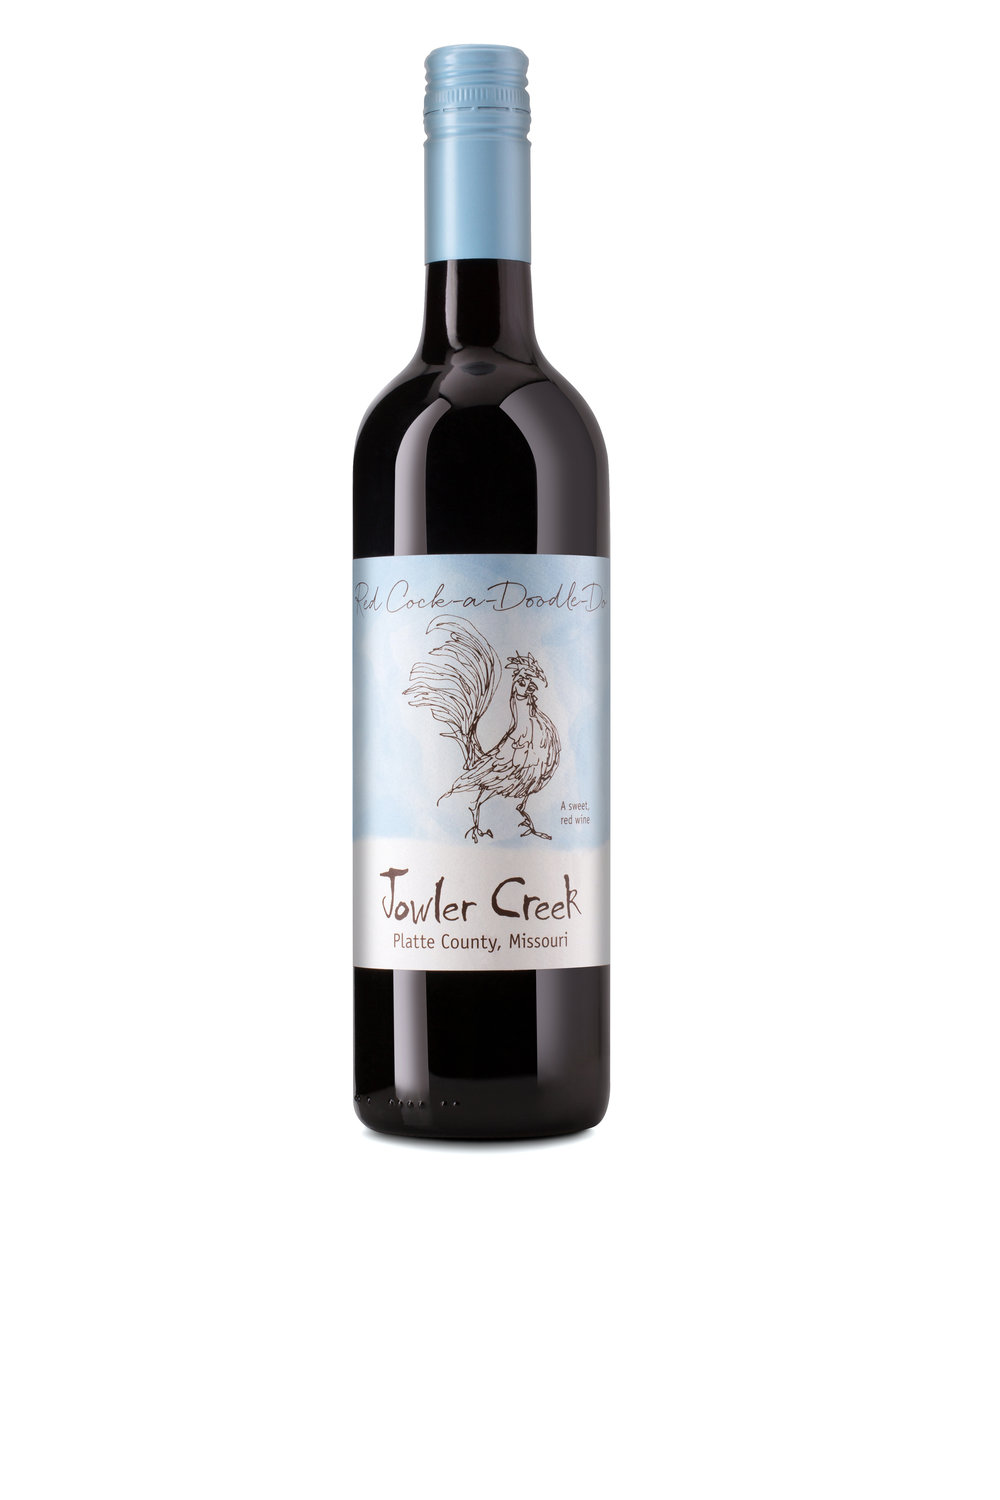 Jowler Creek Winery   near Weston Missouri, St. Joseph Missouri, and Kansas City Missouri  makes the best sweet red wine in Missouri and the best red sweet wine in the Midwest. Try this sweet red wine in our  sustainable   winetasting  room.